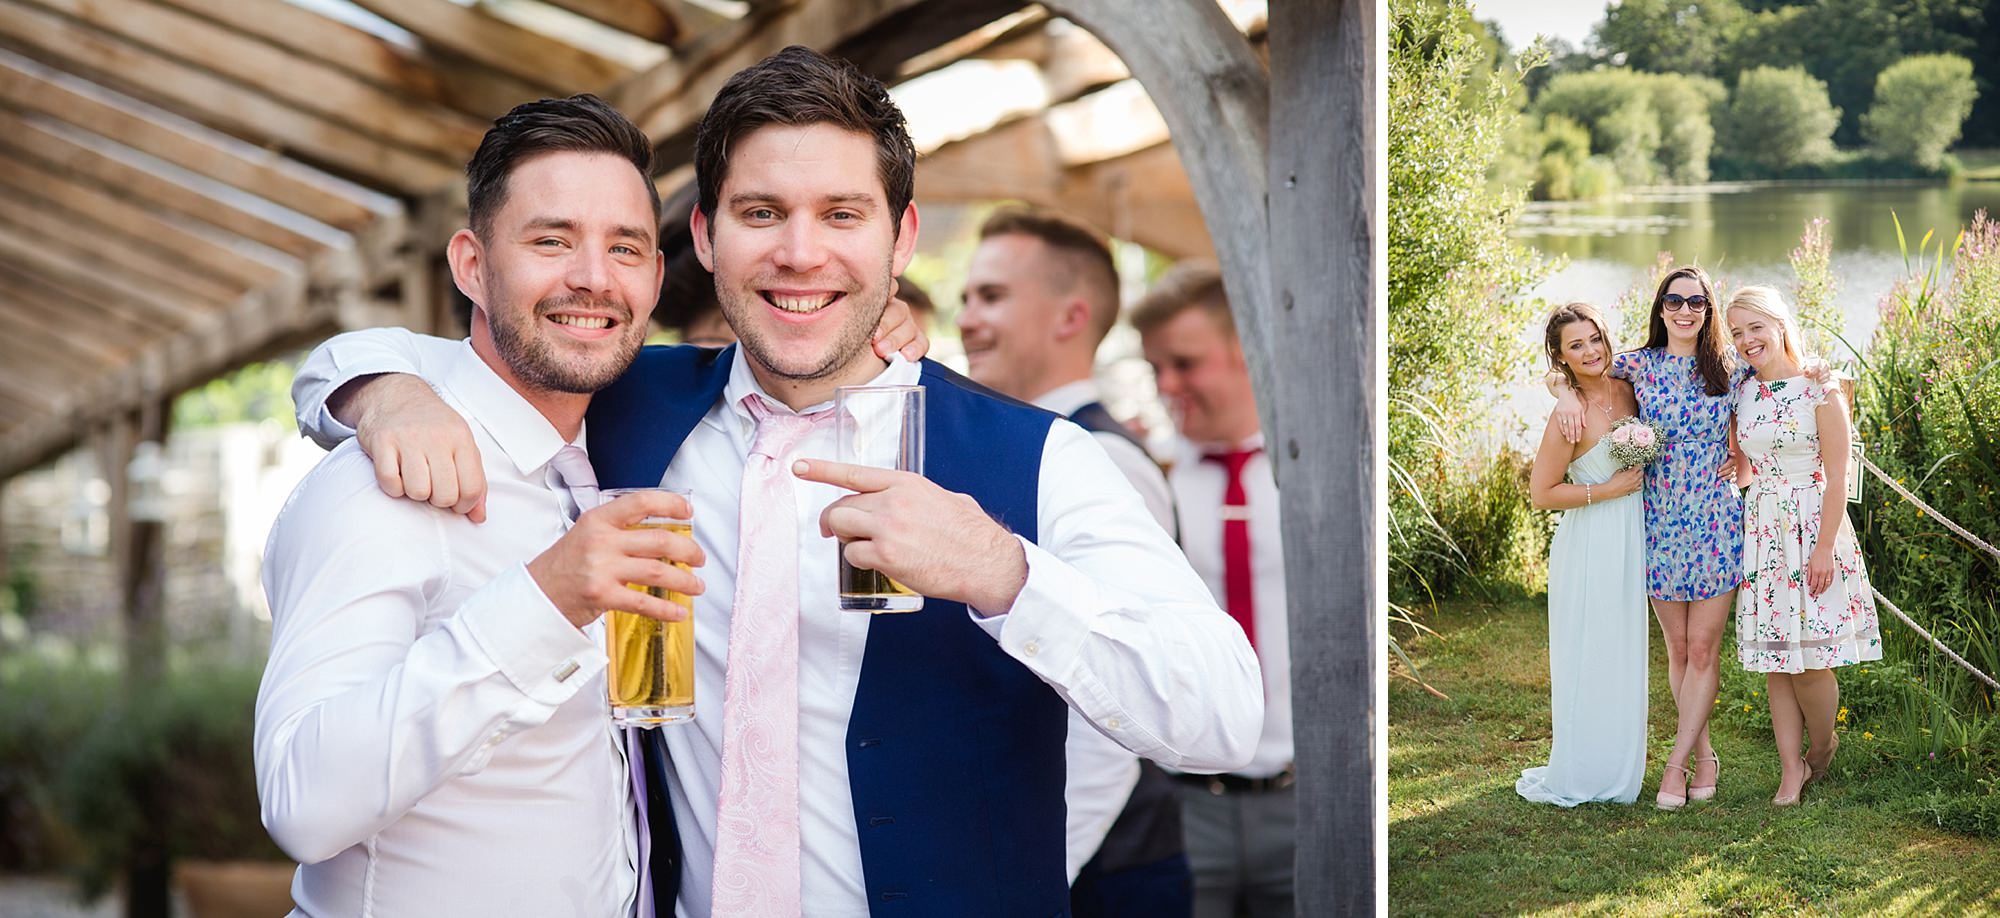 Old Greens Barn Newdigate wedding photography wedding guest portraits